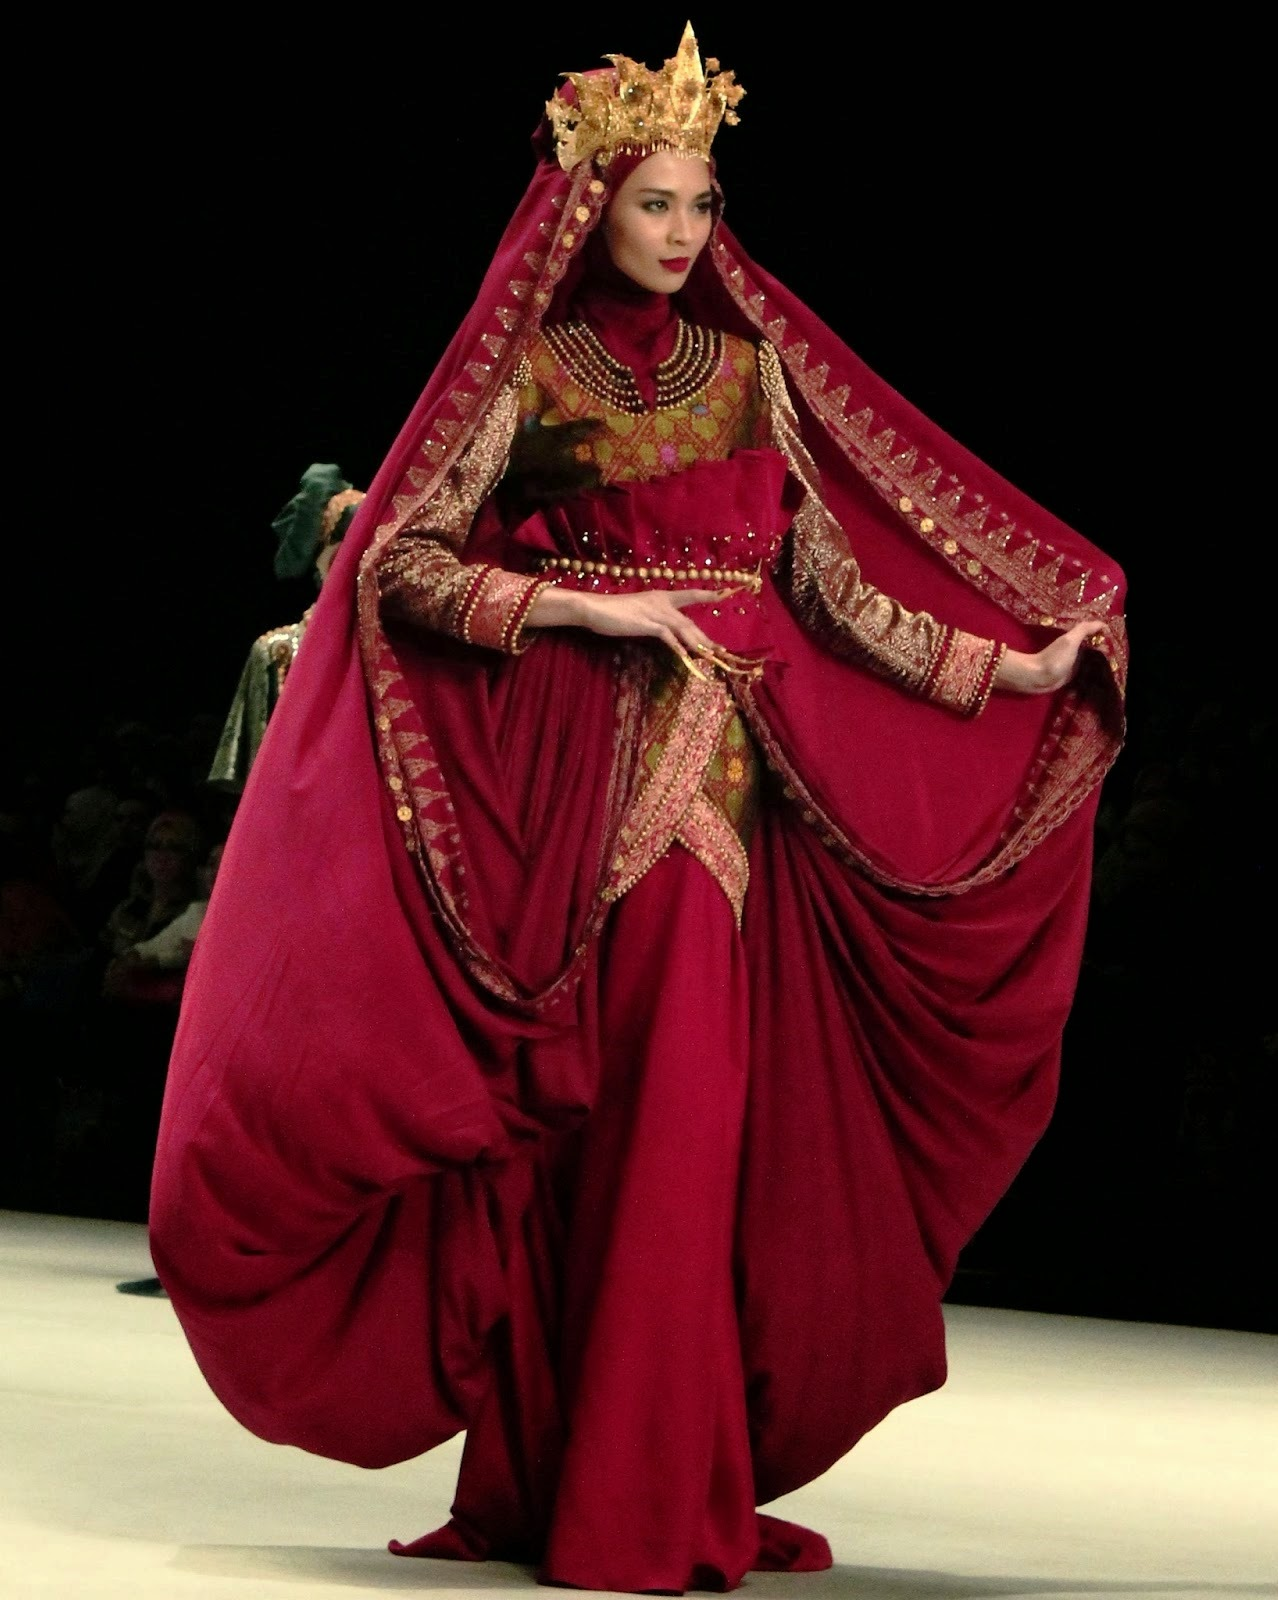 Indonesia Fashion Week 2014 : The Royal Kingdom Of Indonesia Moslem ...